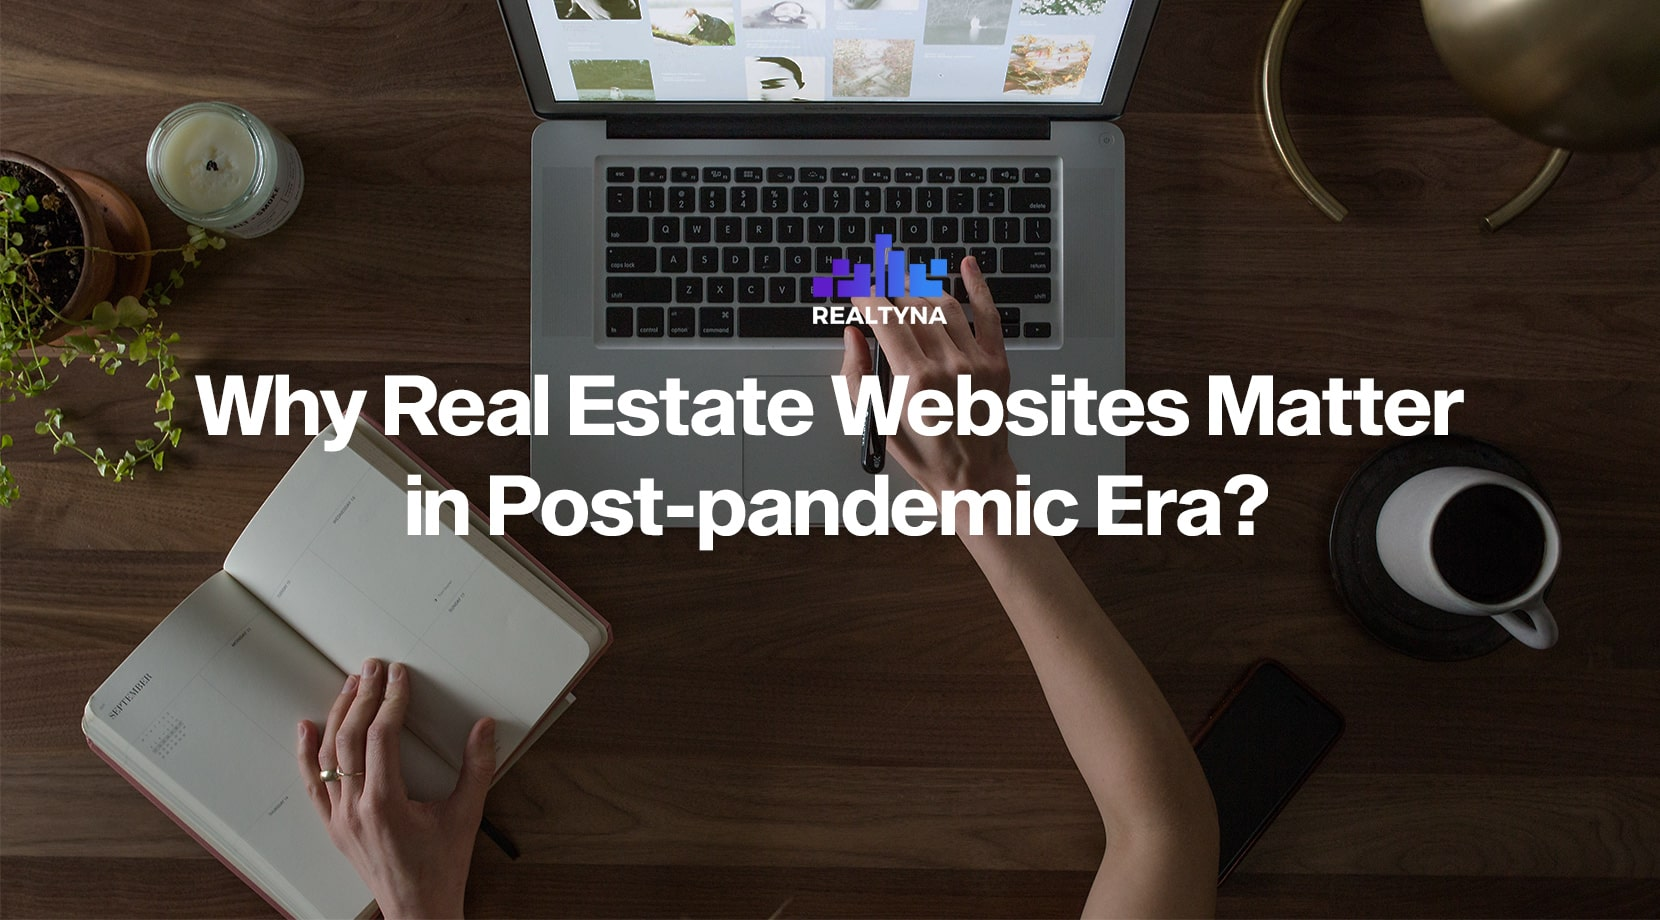 Why Real Estate Websites Matter in Post-pandemic Era